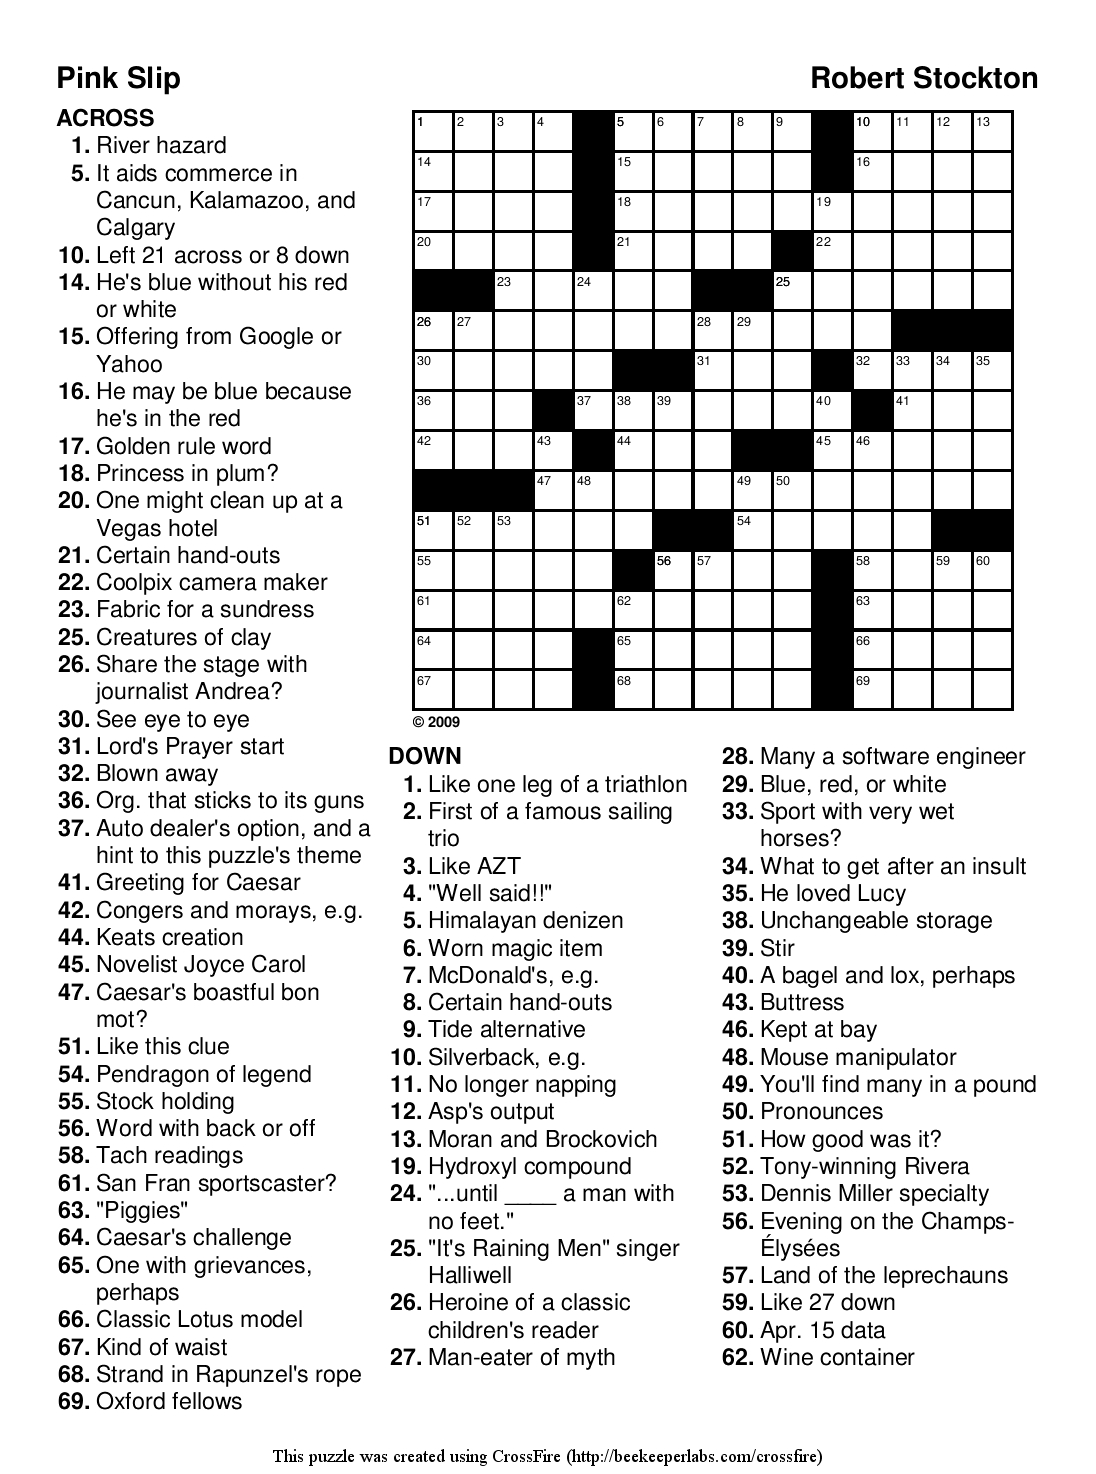 Printable Puzzles For Adults | Easy Word Puzzles Printable Festivals - Printable Bible Crossword Puzzles For Adults